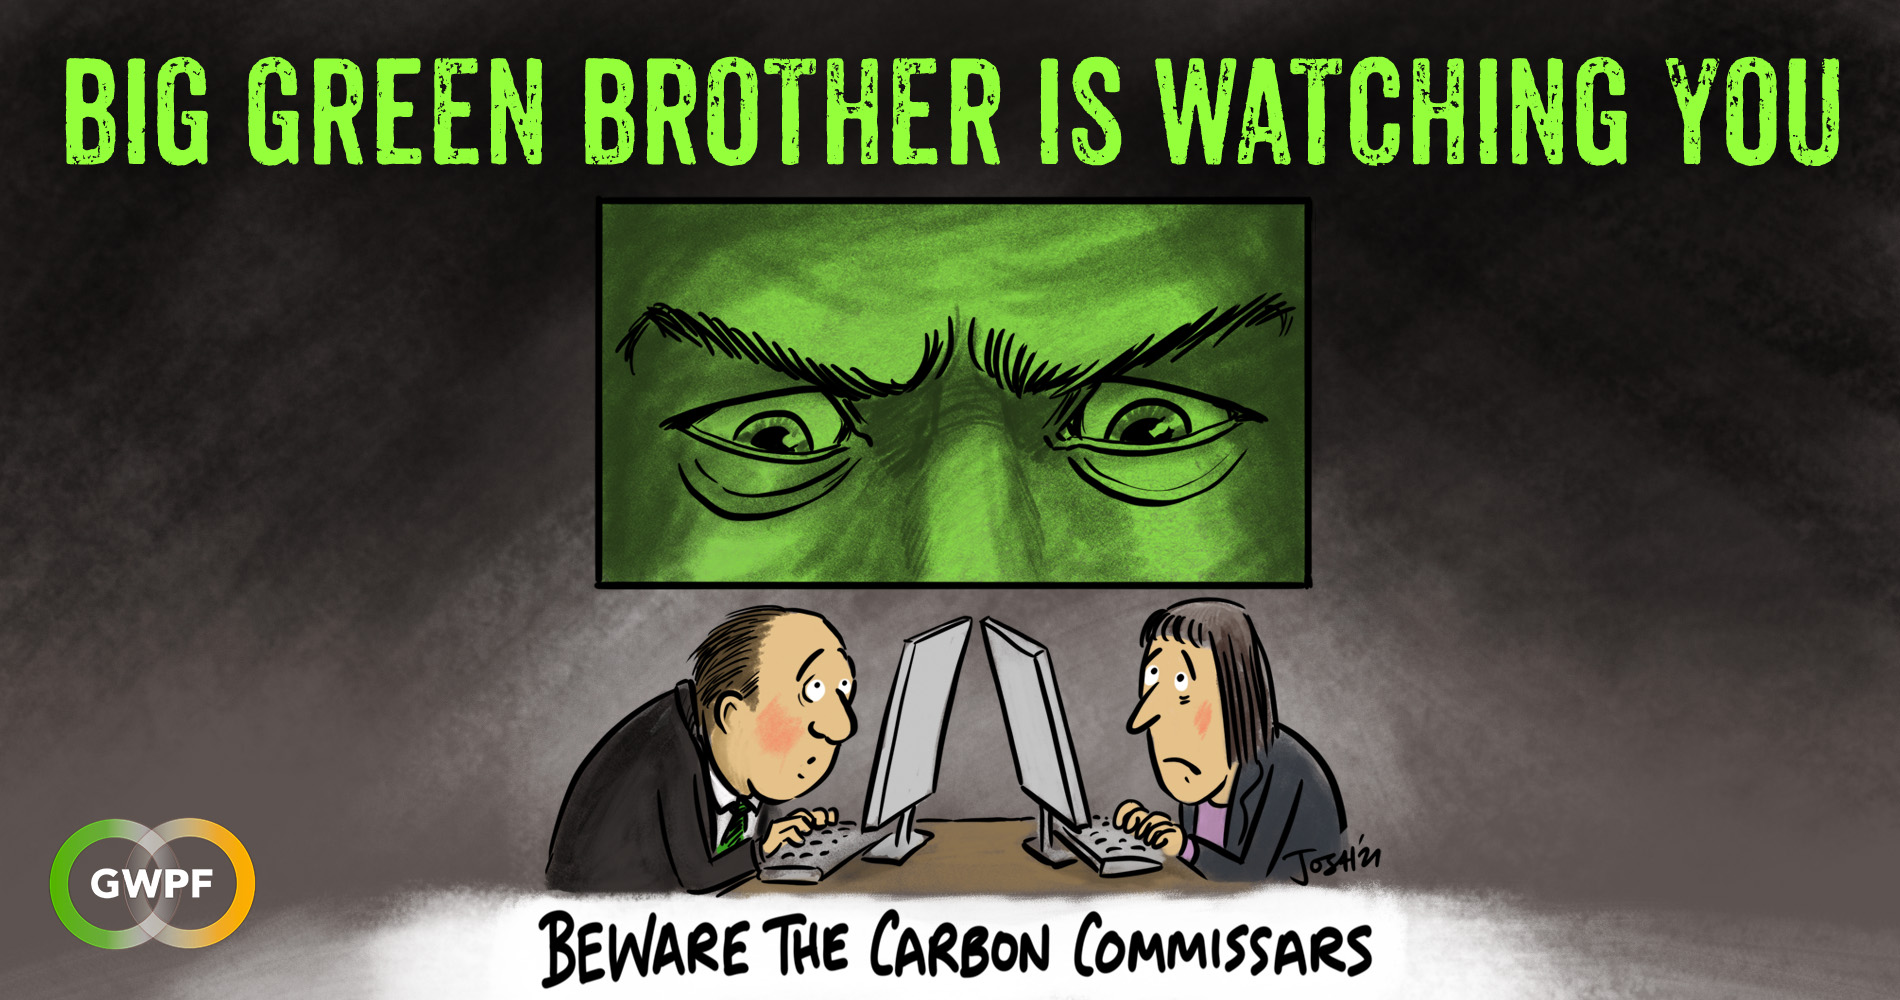 The Carbon Commissars are watching you! Companies face compulsory green auditors